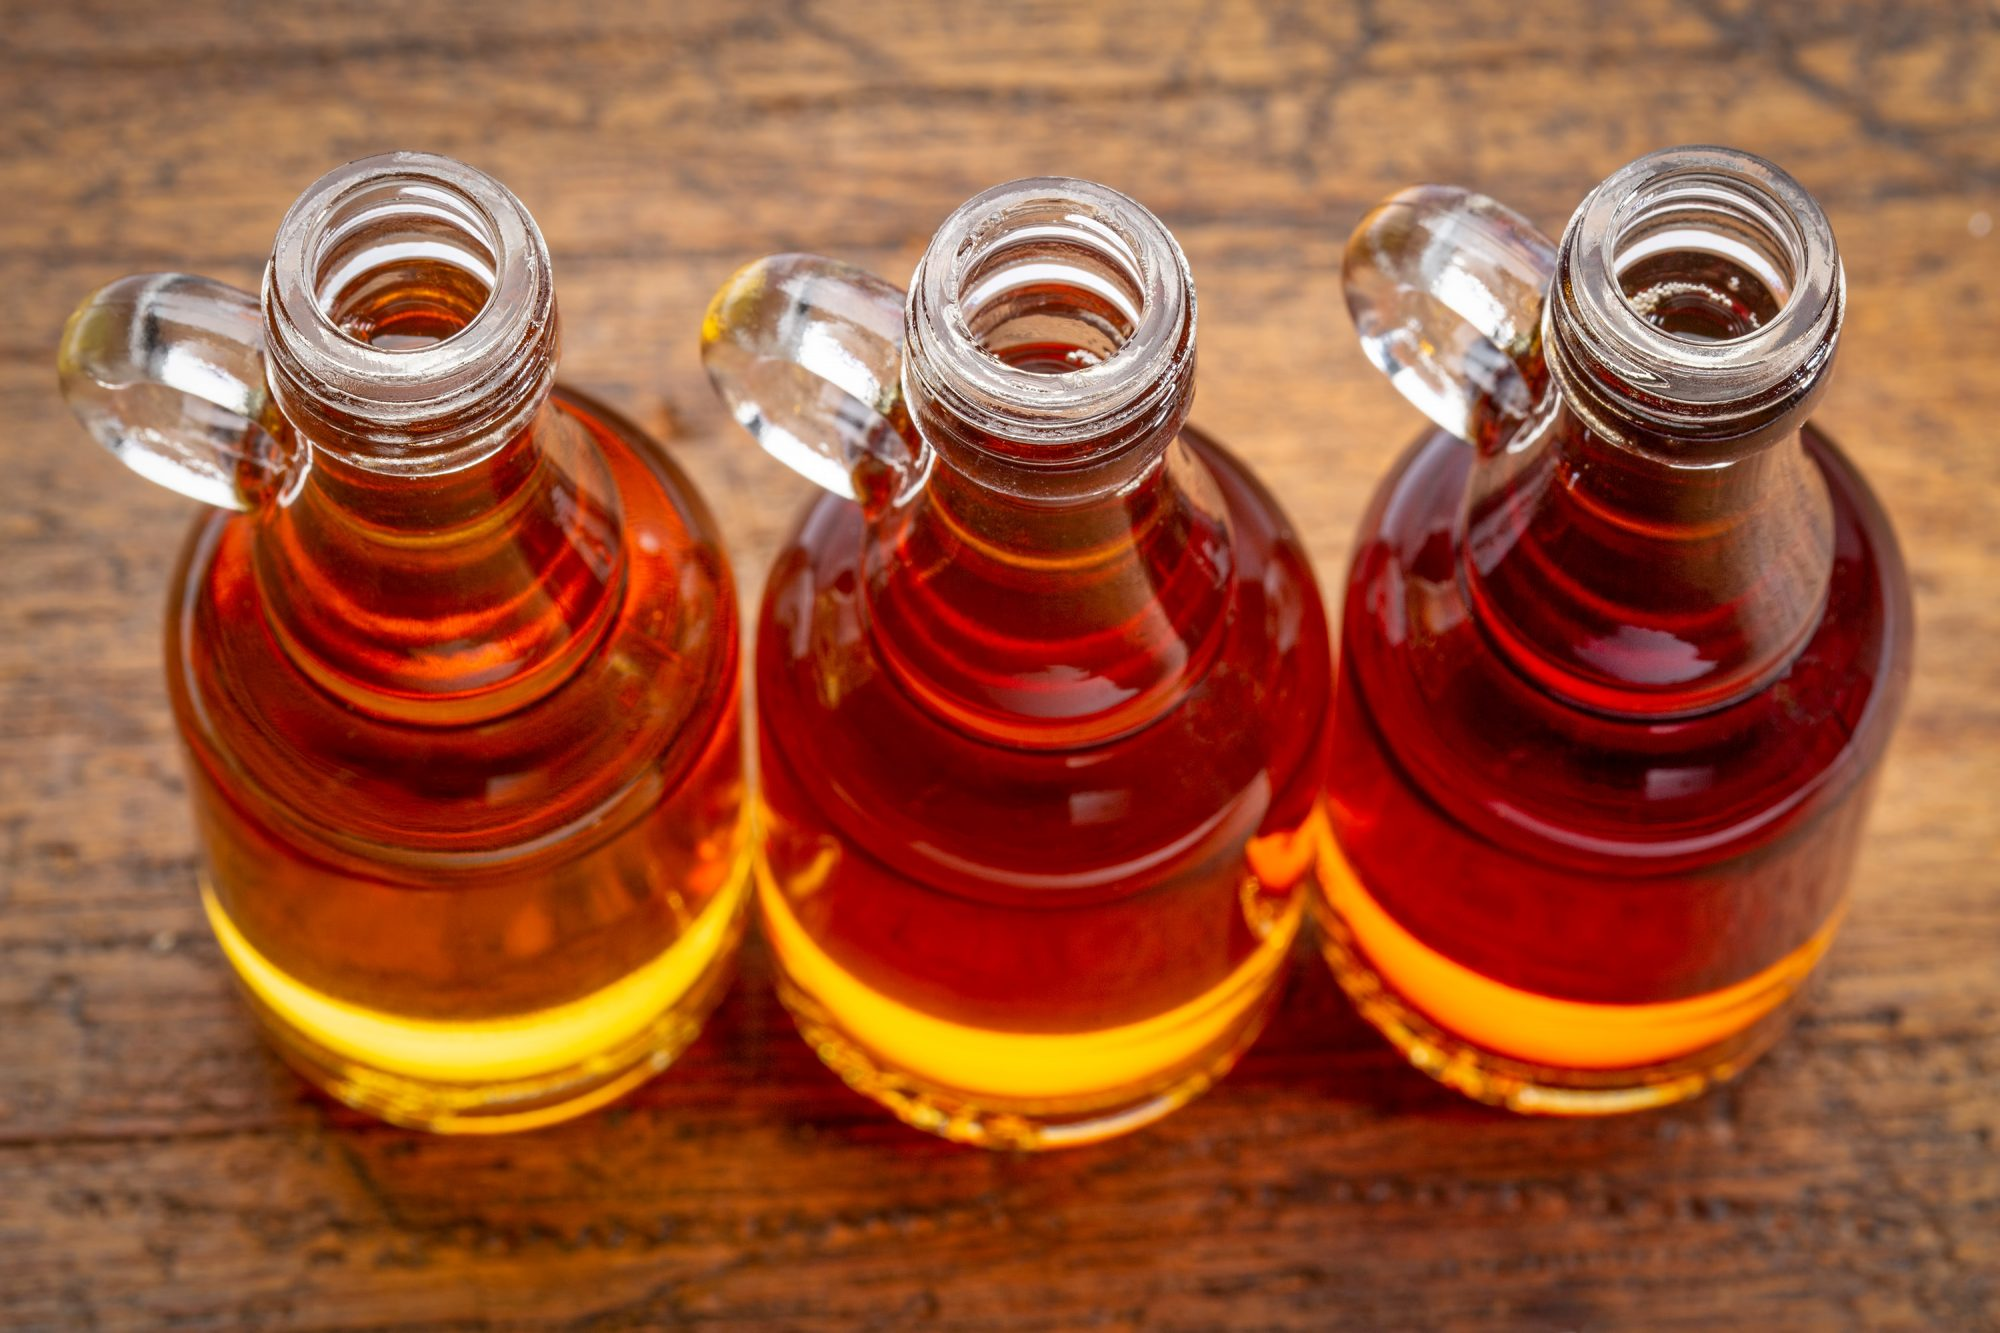 sampler of pure maple syrup